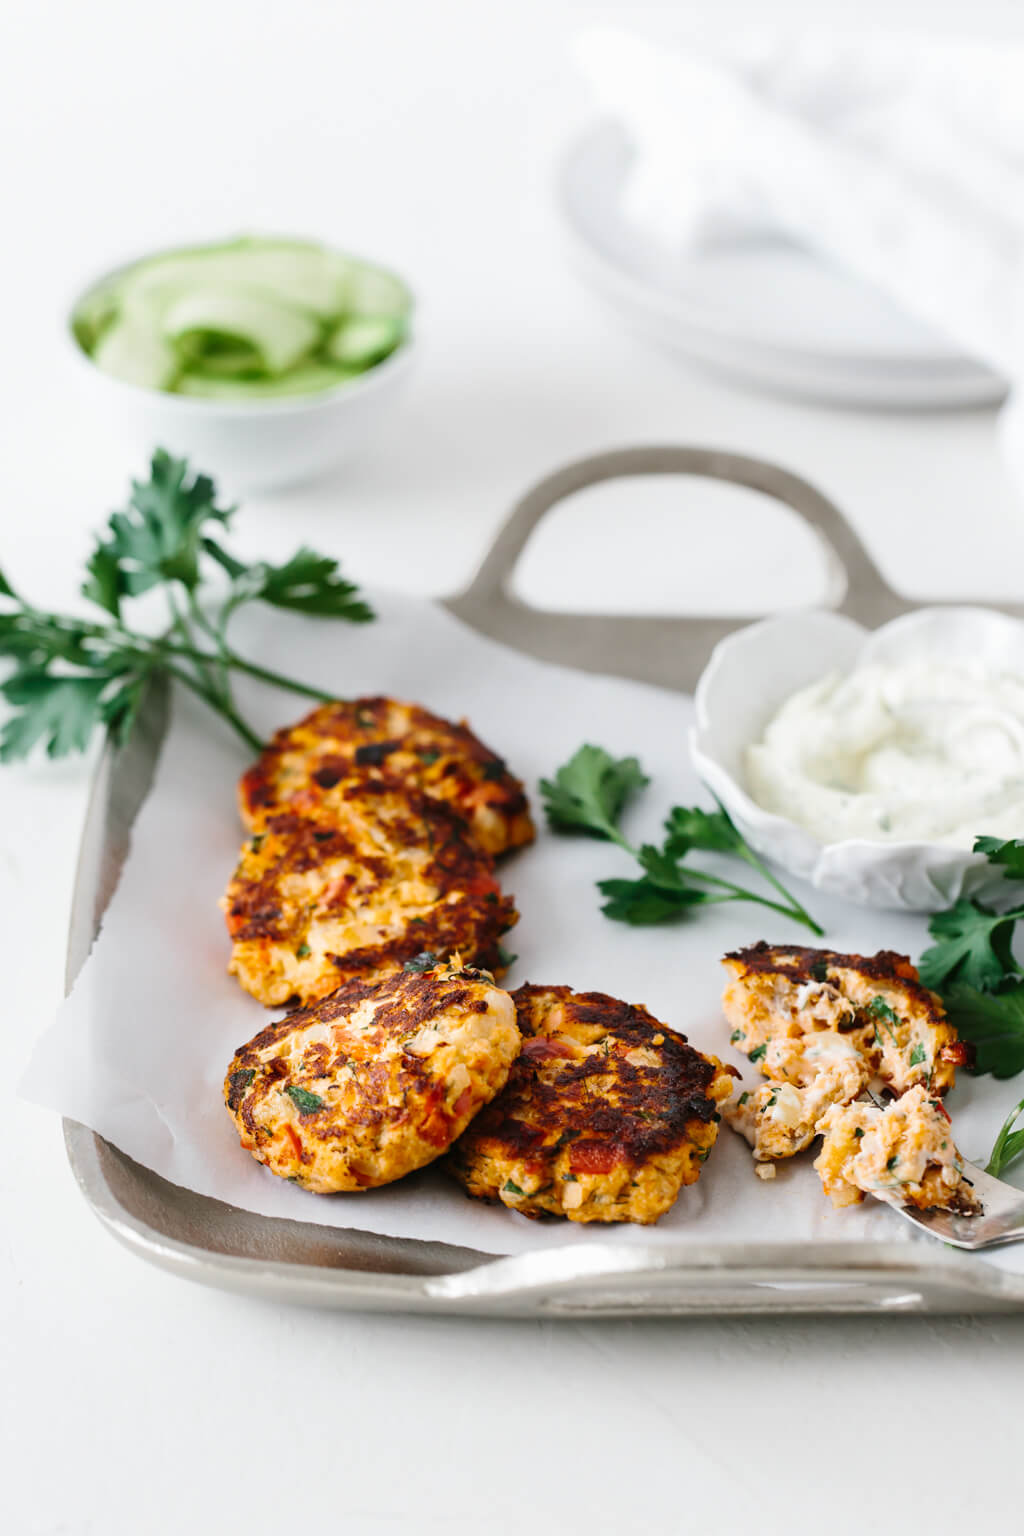 Salmon patties are a deliciously healthy dinner recipe. They're incredibly moist and flavorful and also gluten-free and paleo. I used fresh salmon, but you could use canned salmon as well. #SalmonPatties #HealthyDinnerRecipes #GlutenFreeRecipes #PaleoRecipes #SalmonRecipes